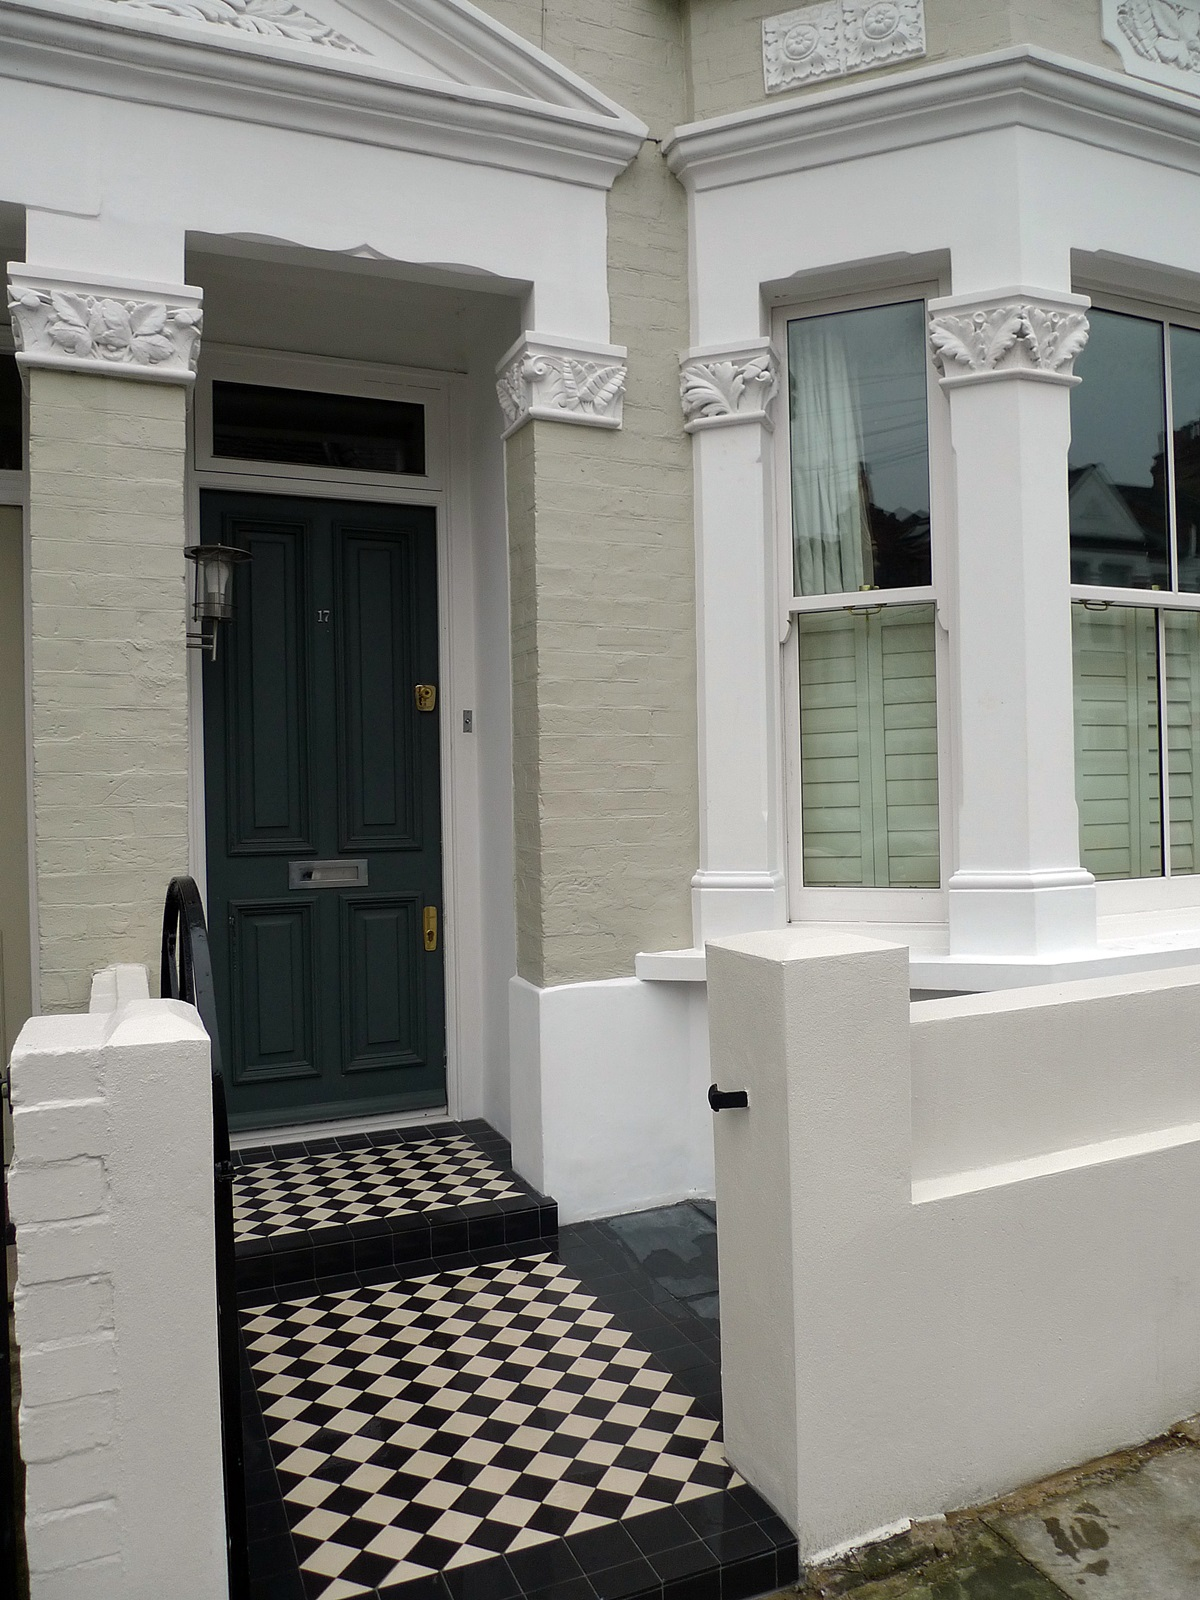 front garden fulham and chelsea london rendered wall slate tiles and black and white victroian mosaic tile path